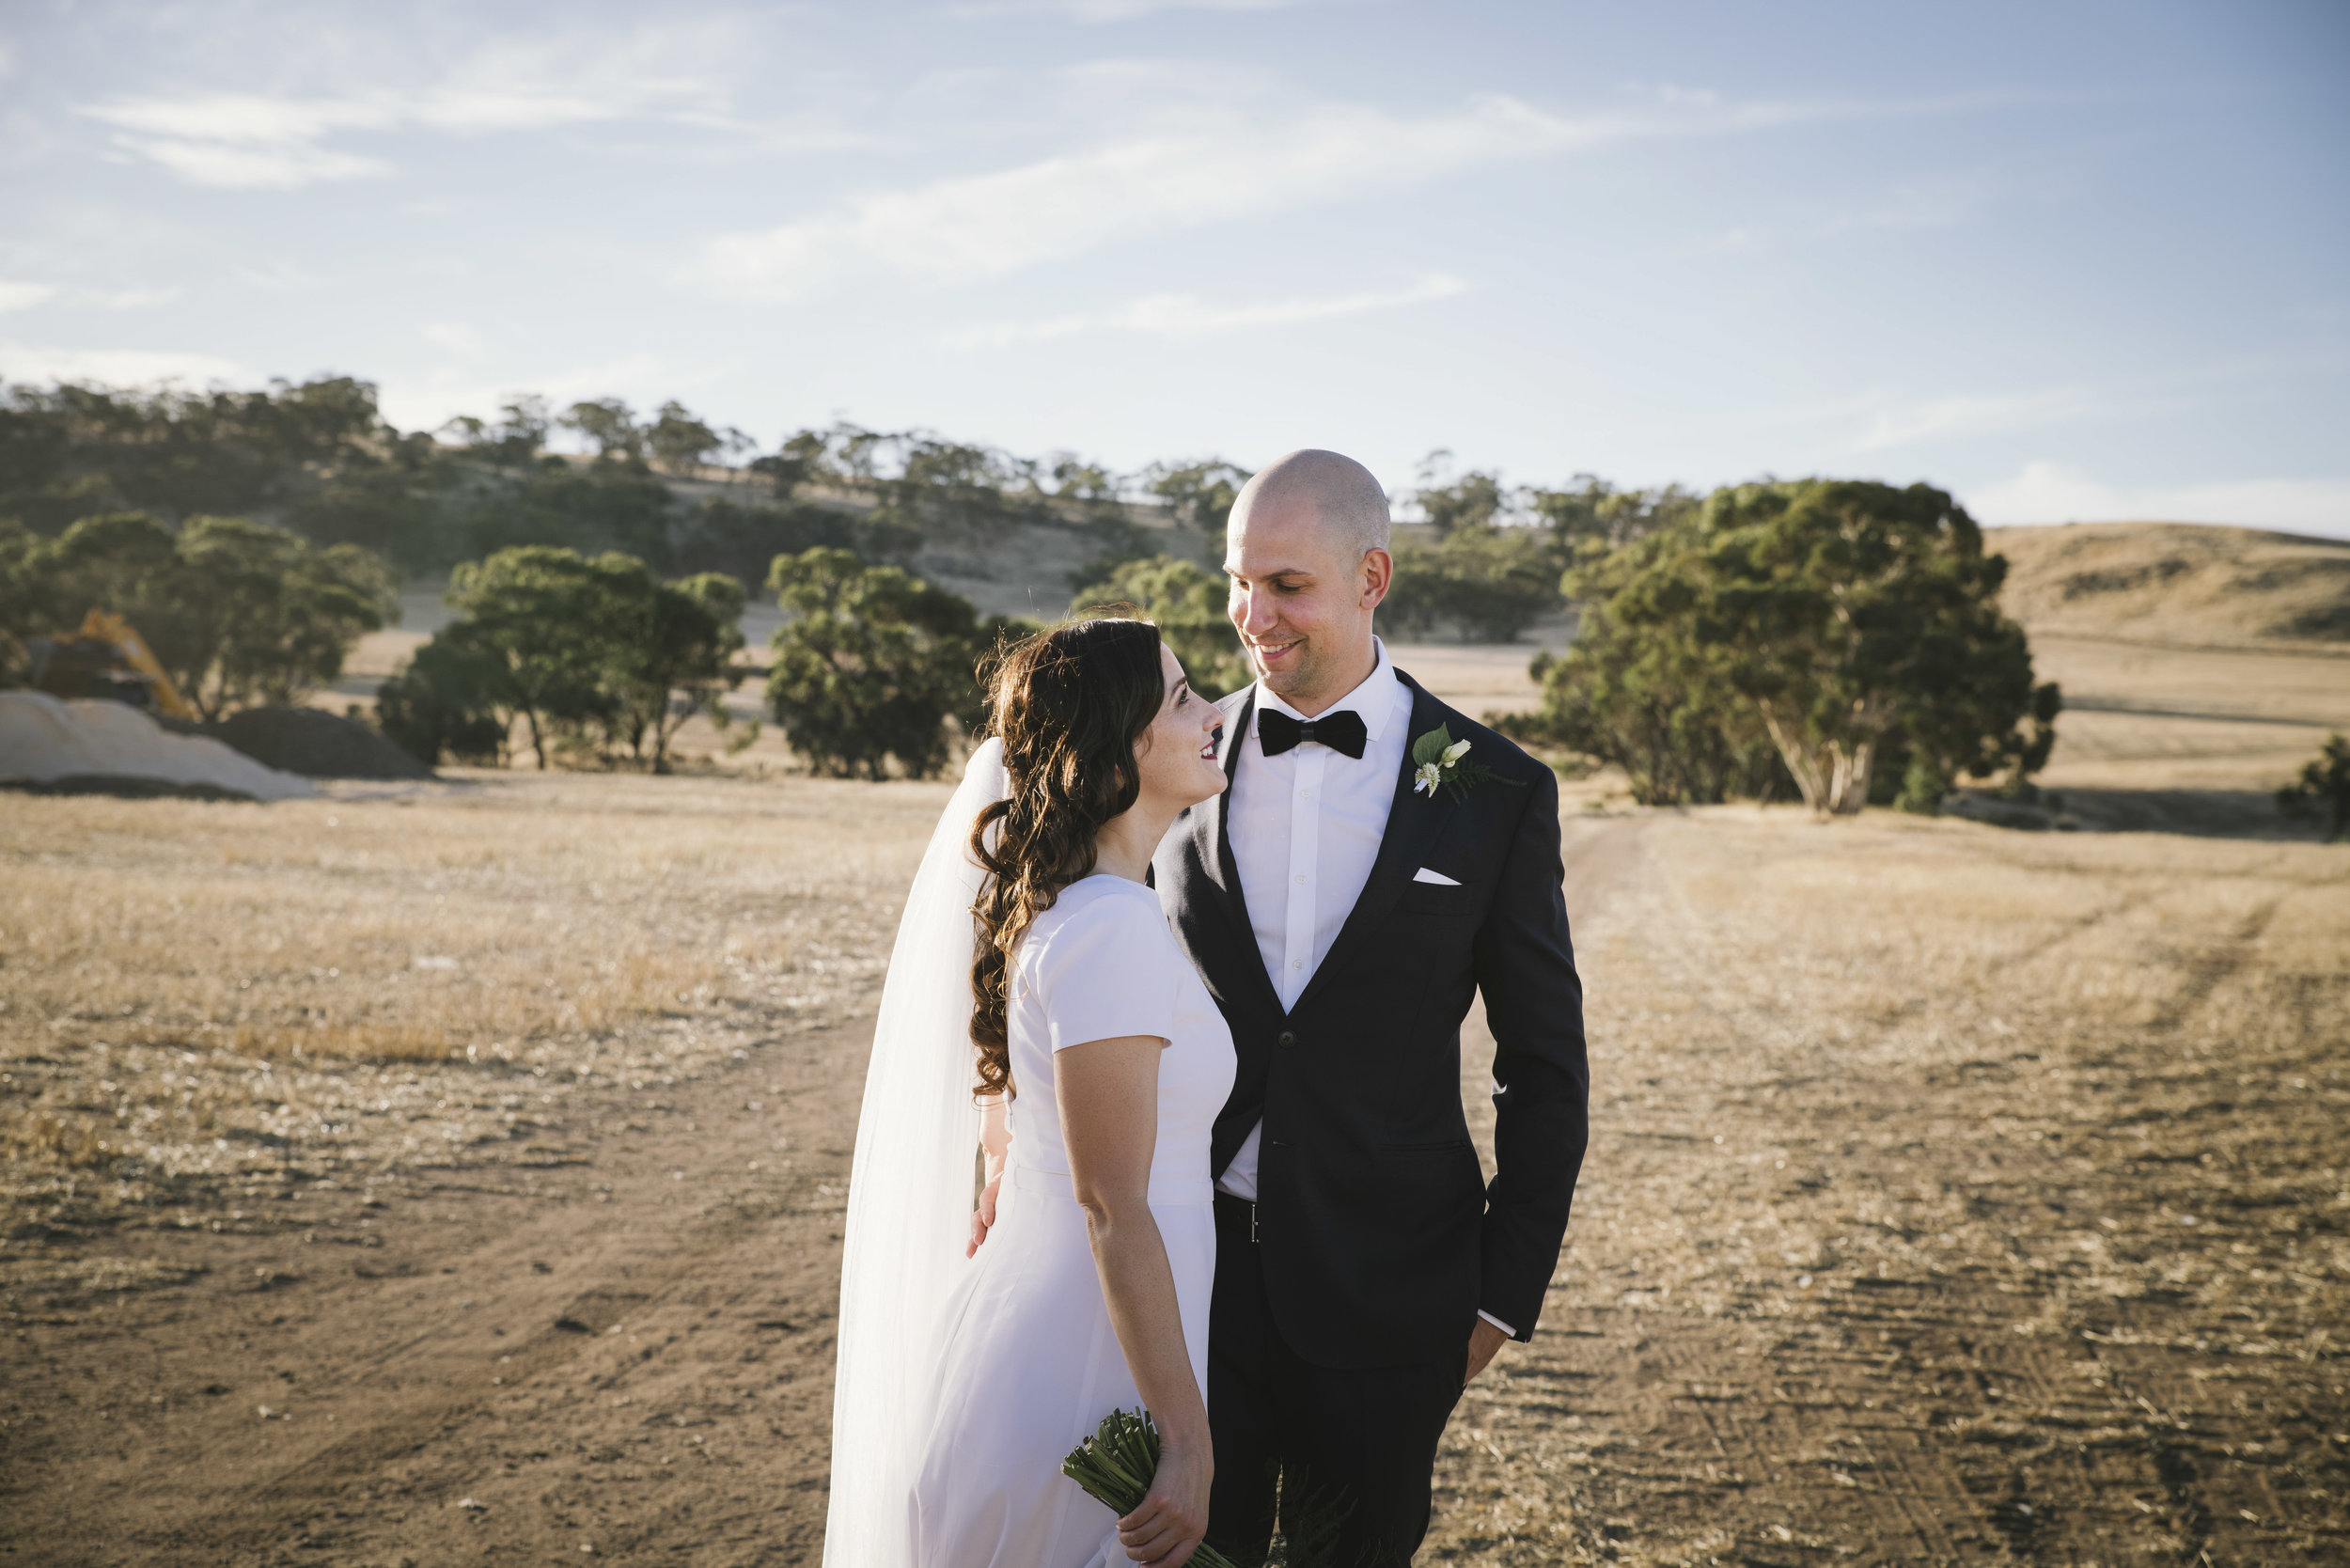 Angie Roe Photography Avon Valley Wheatbelt Country Wedding (37).jpg